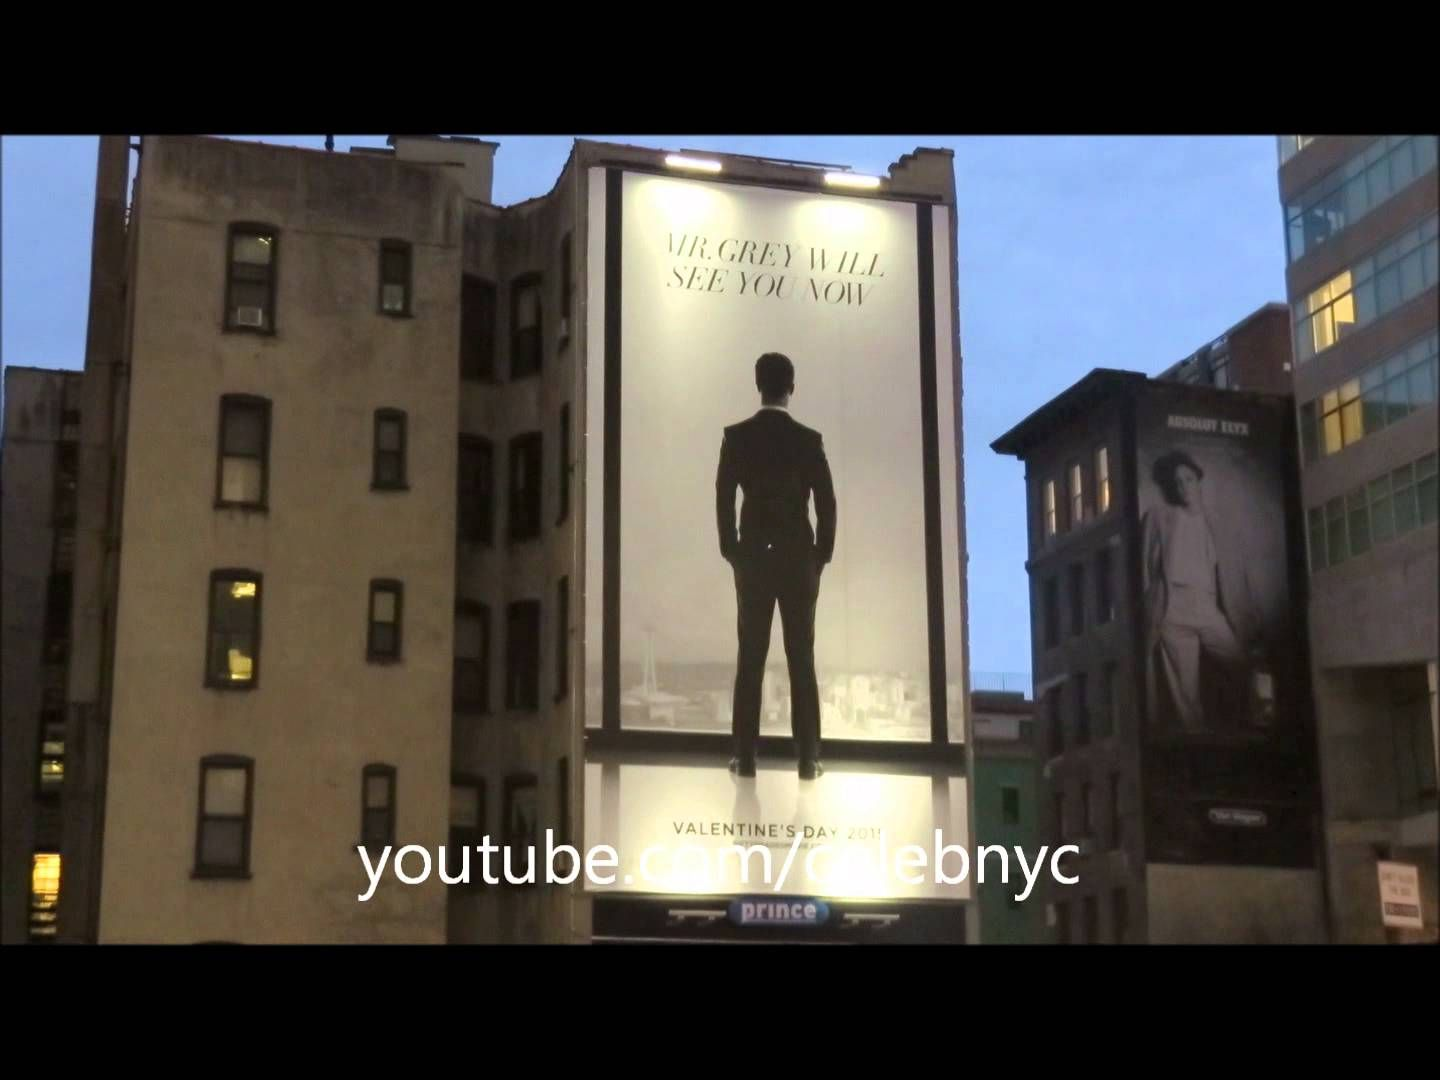 First Official Fifty Shades Of Grey Poster In New York Featuring